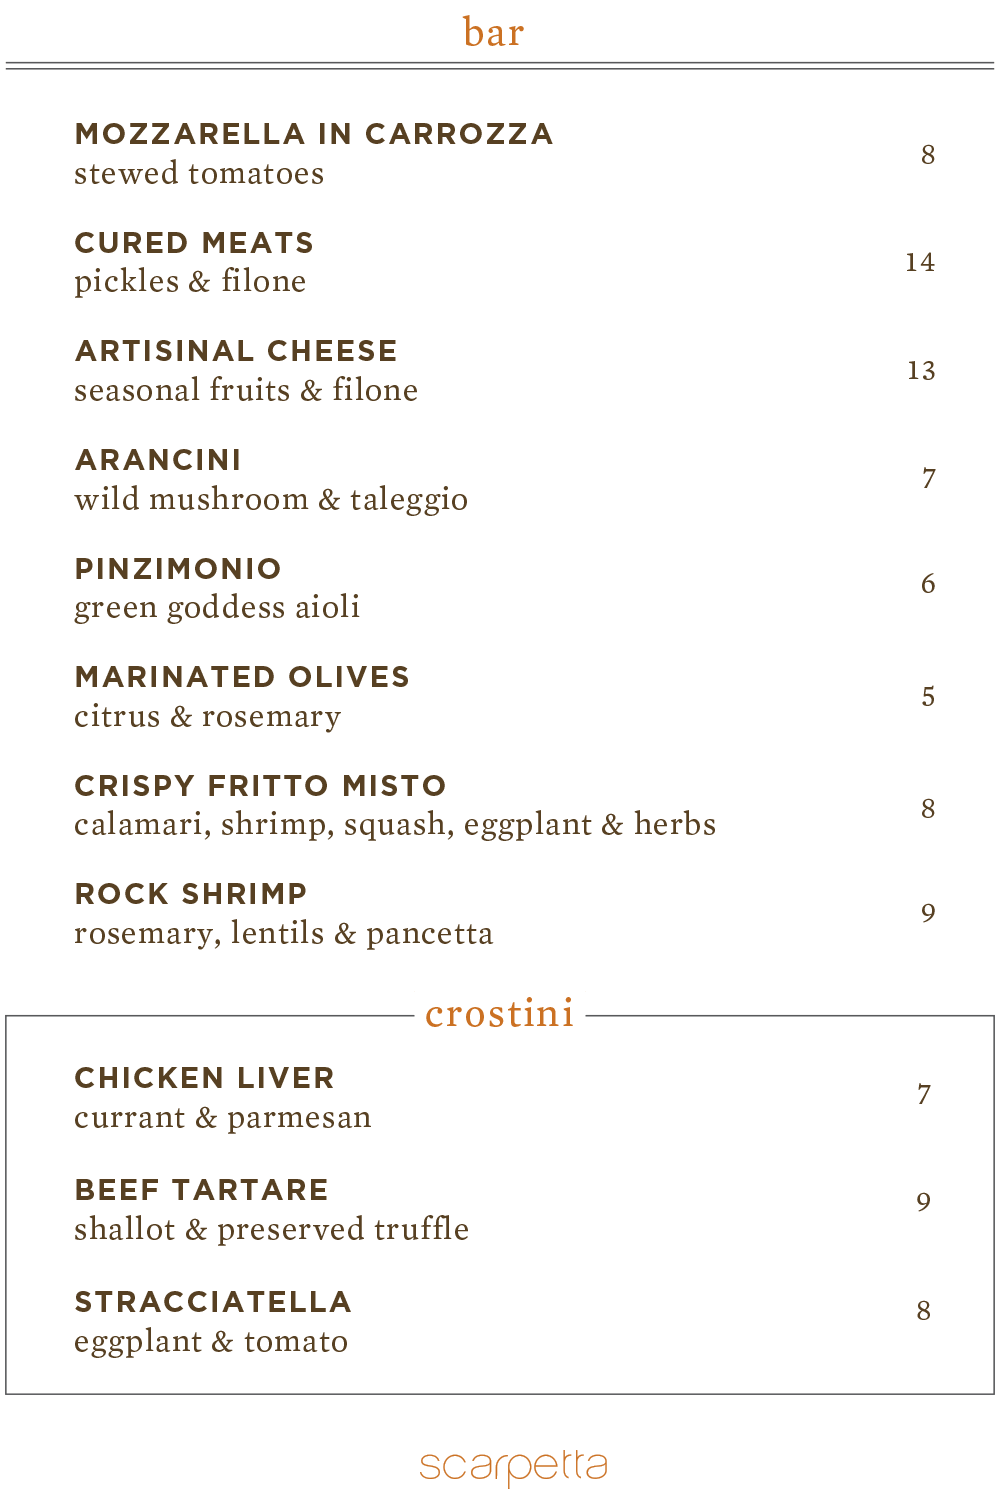 scarpetto BAR SNACKS menu 9.28